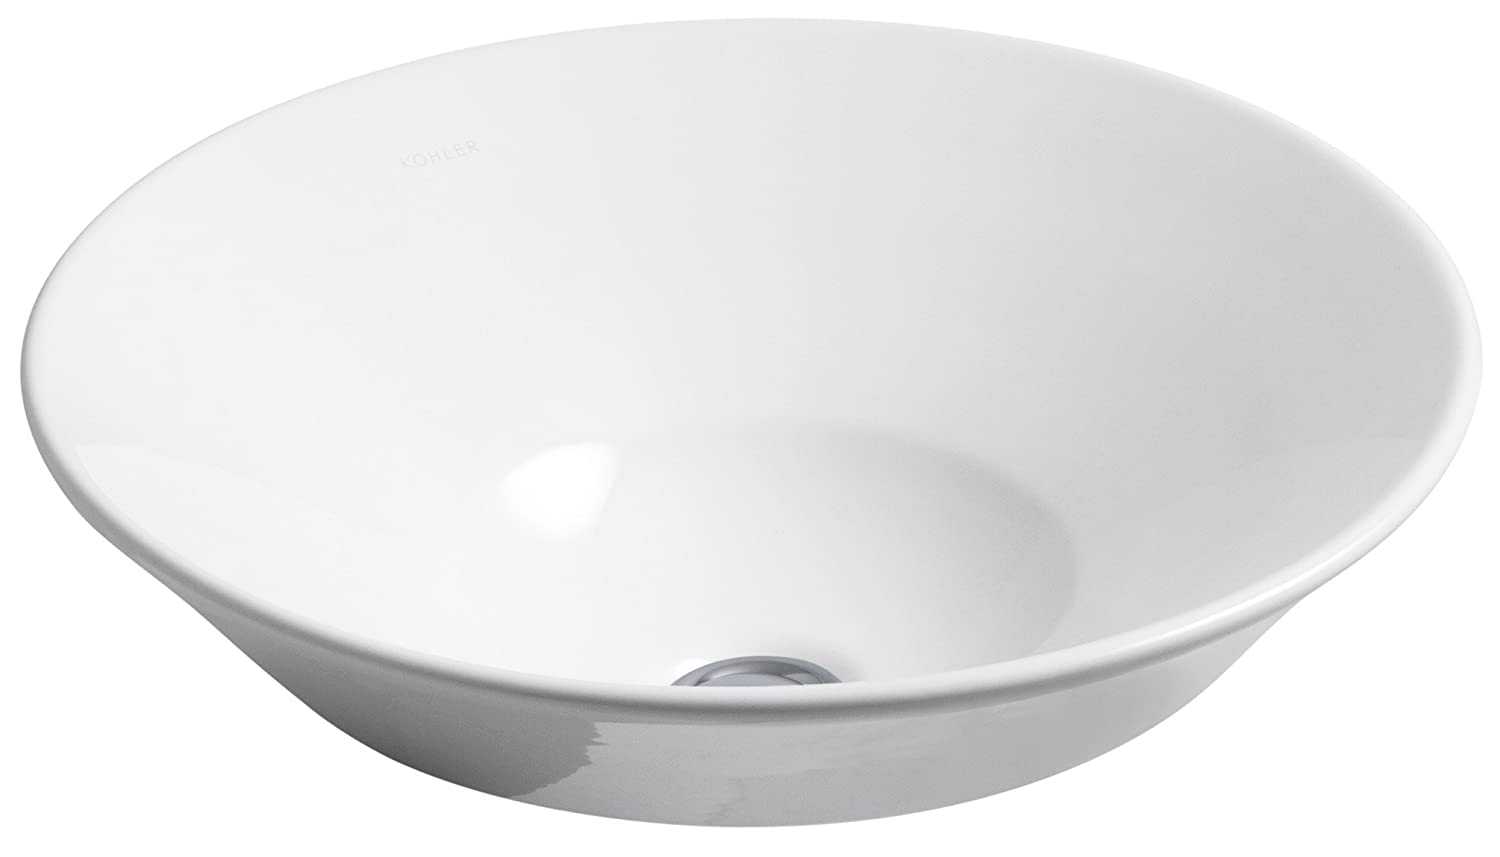 Kohler 2200-0 Vitreous china Wall Mounted Round Bathroom Sink, 24 x 20.5 x 9.75 inches, White